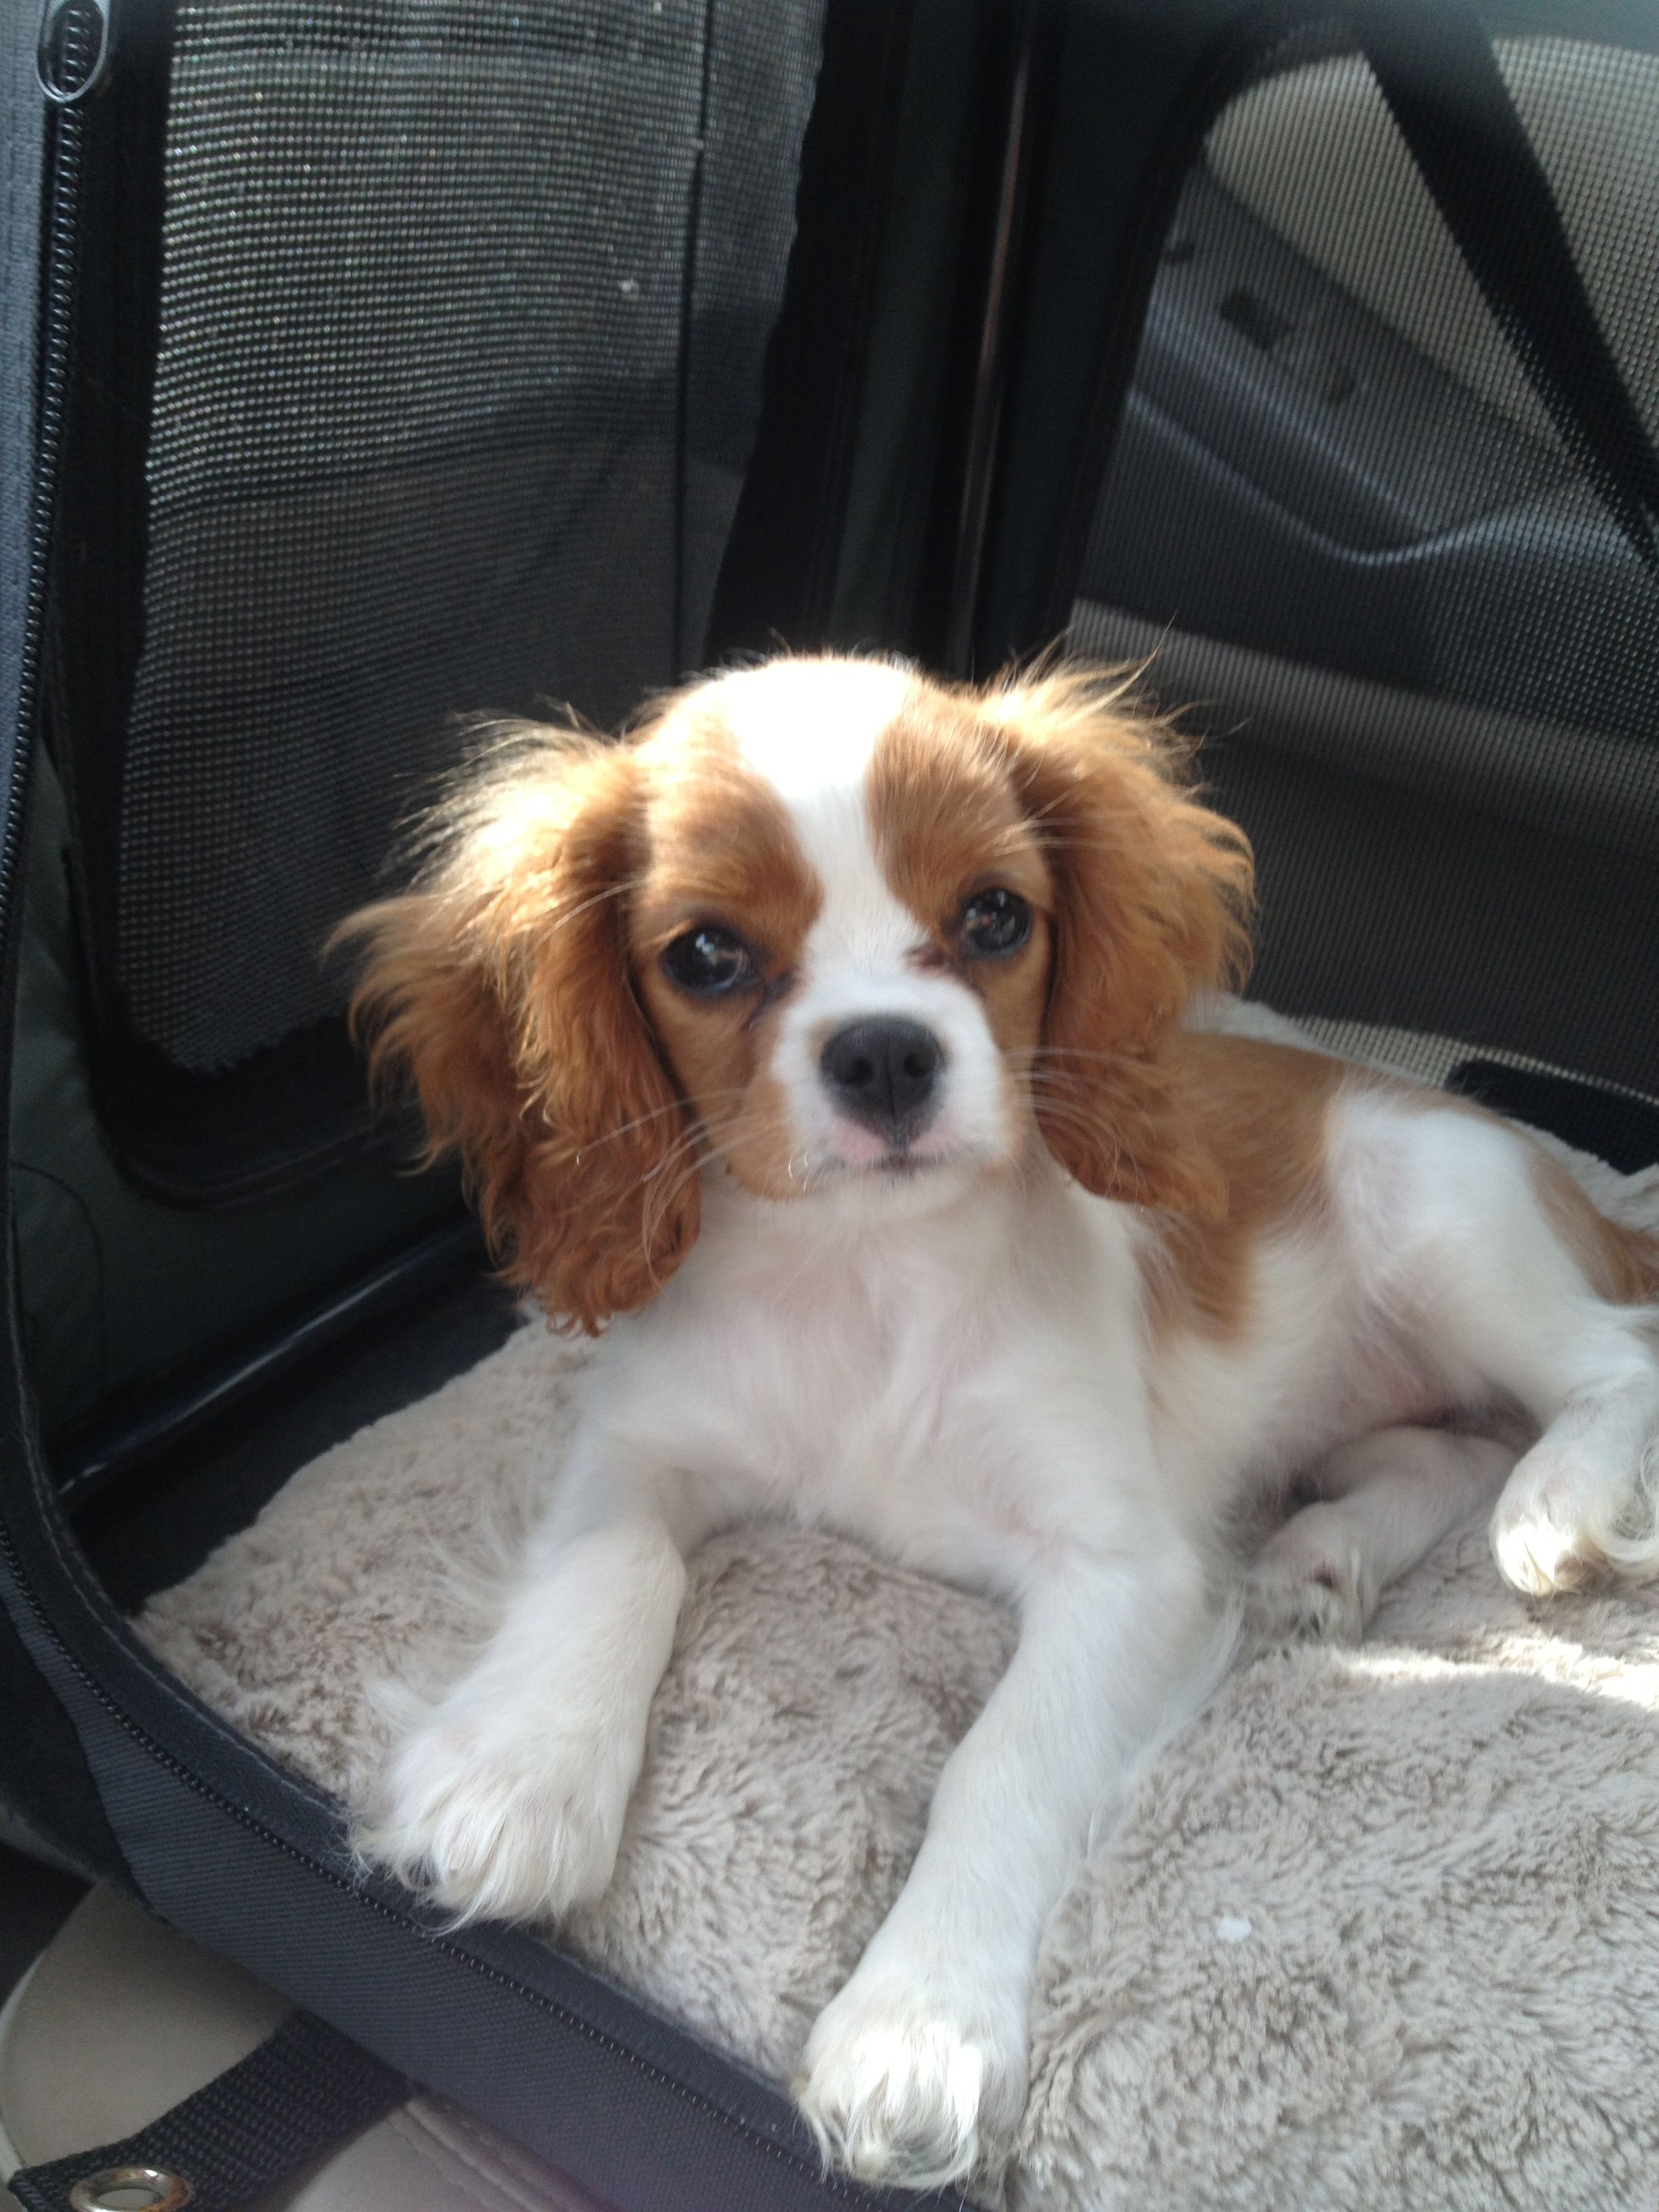 Cavalier King Charles Spaniel Puppy Loves To Ride In Car Cavalier King Charles Dog King Charles Dog King Charles Cavalier Spaniel Puppy